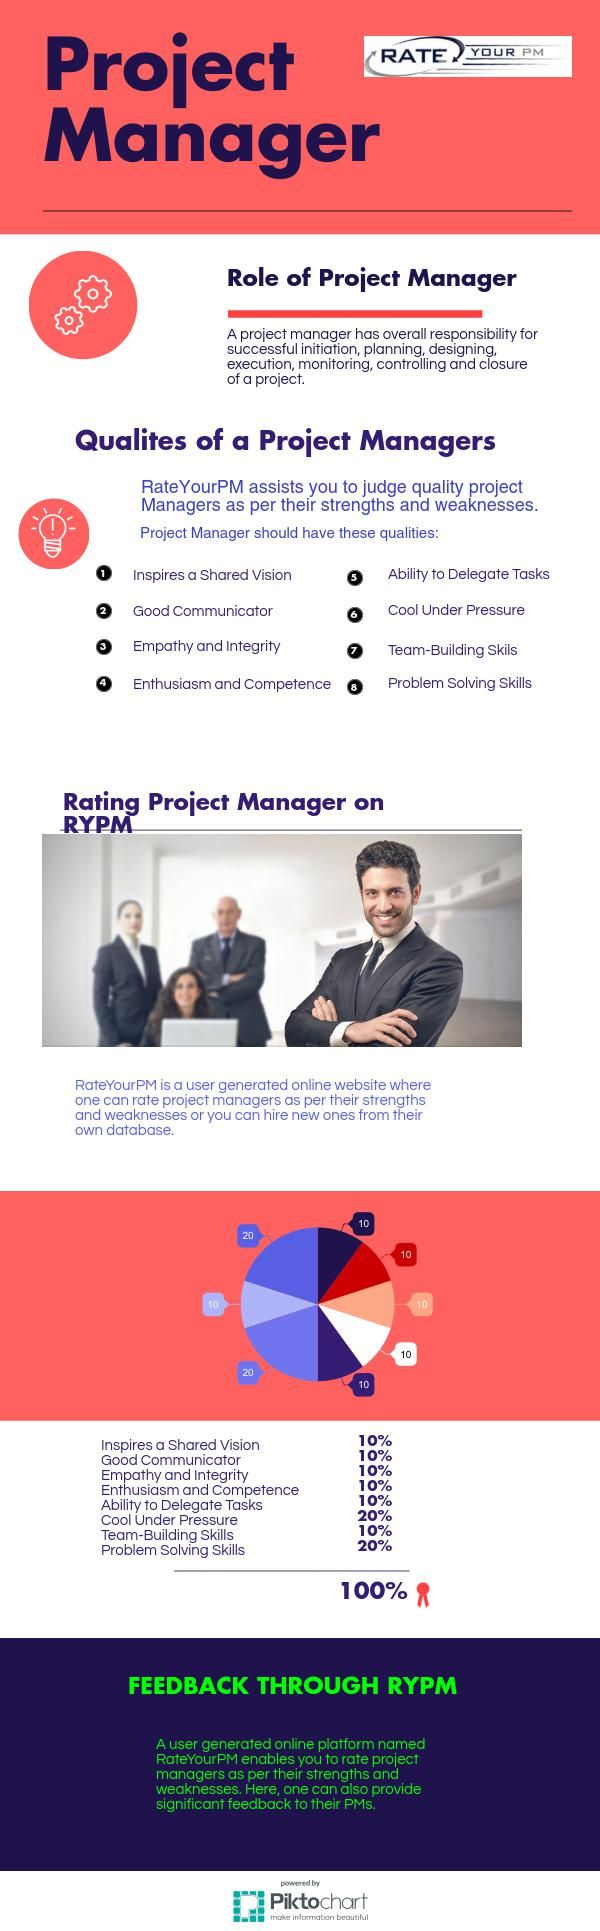 17 best images about rate your project manager rateyourpm assists you in hiring quality project managers as per their strengths and weaknesses here